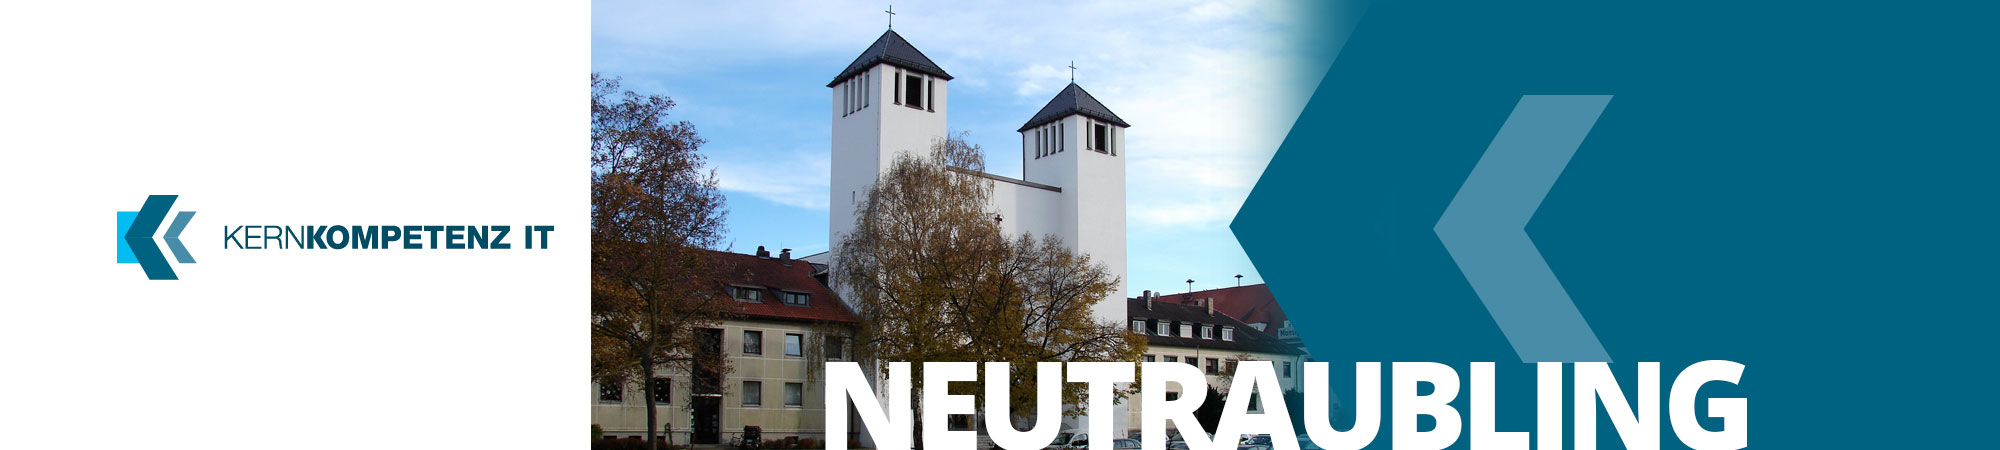 IT Systemhaus Beratung Neutraubling